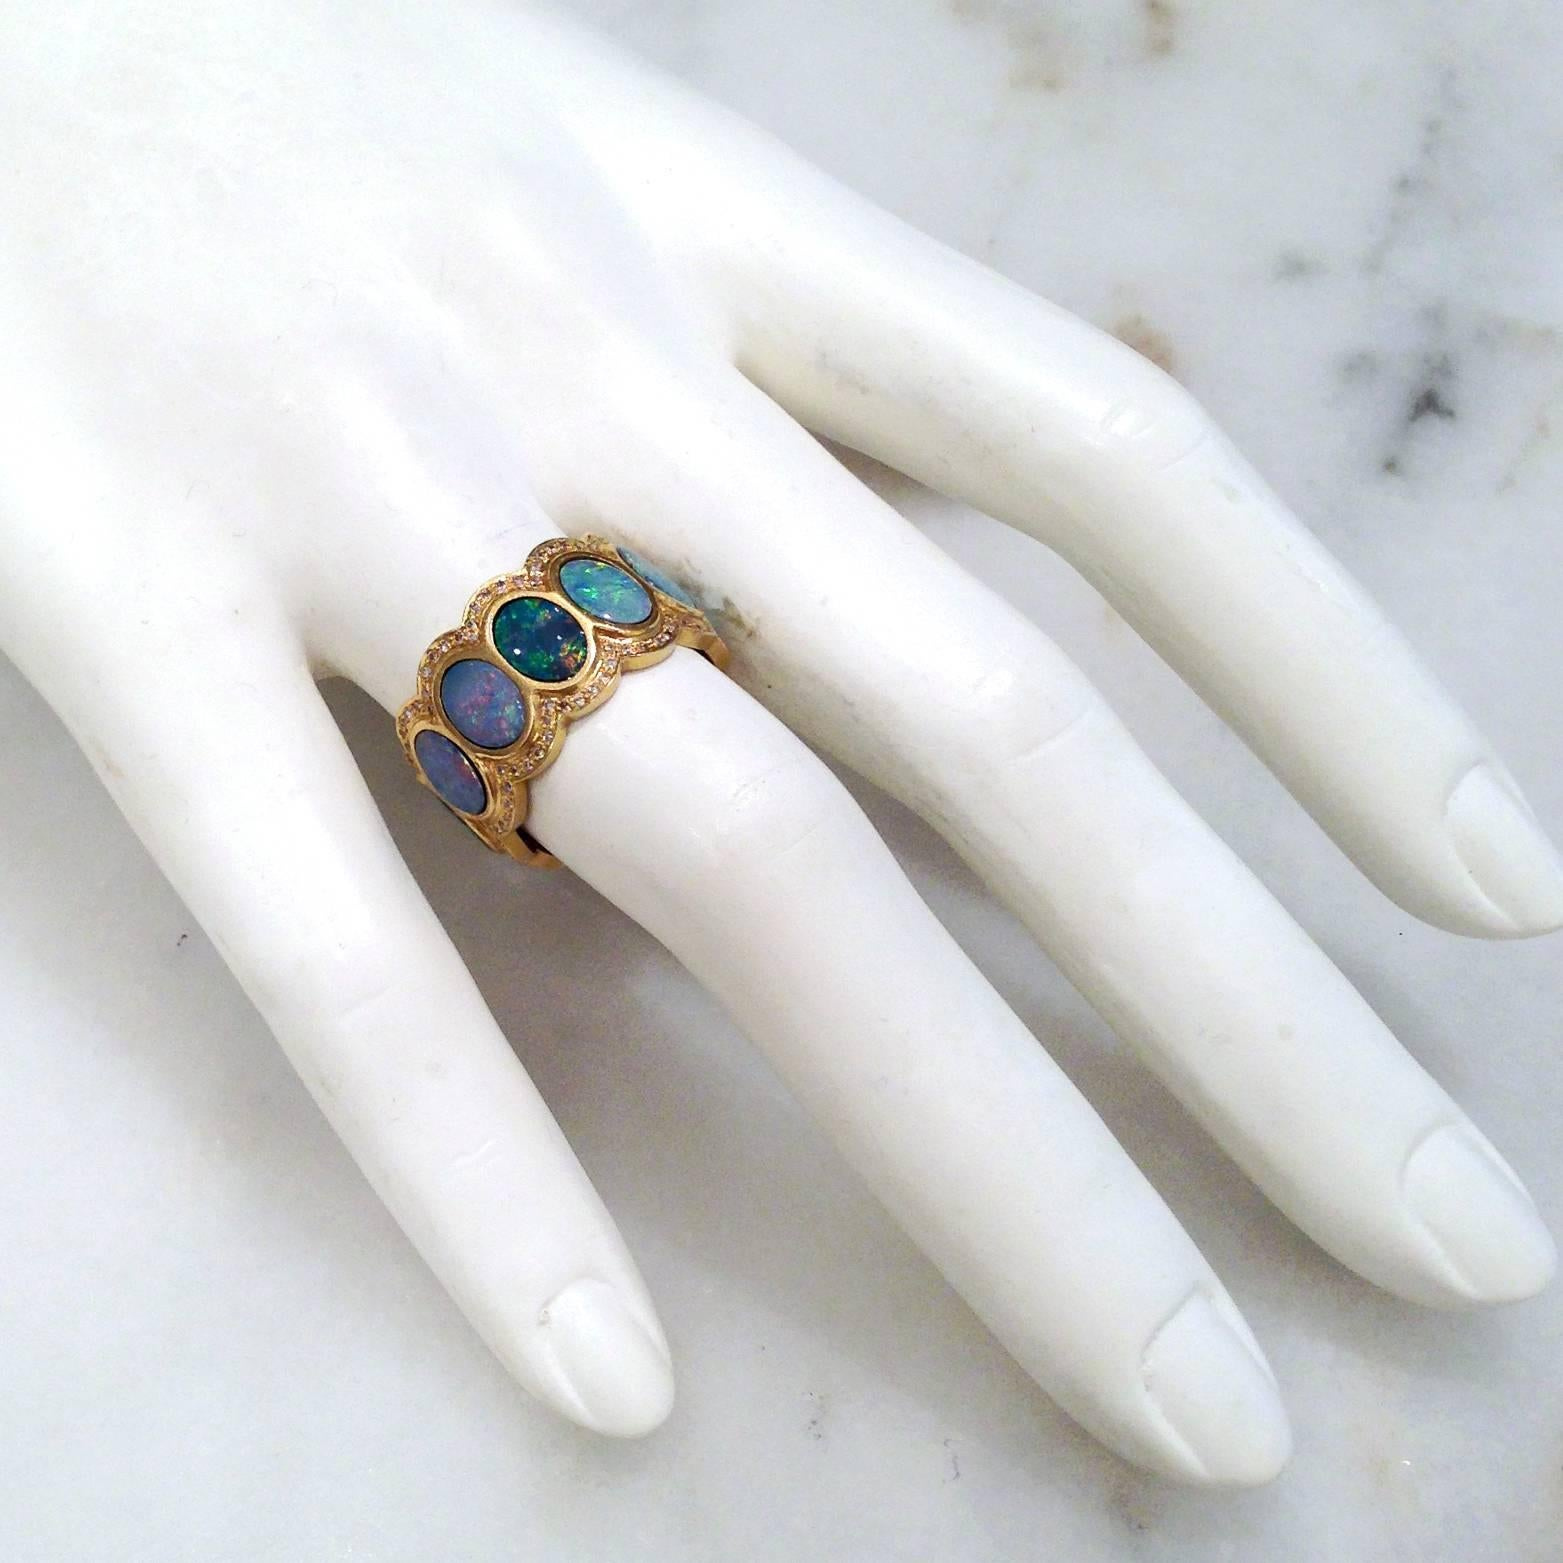 rings band opal newtwist groovy large by product jamie ss on boulder engagement joseph size asymmetrical ring gold vertical w